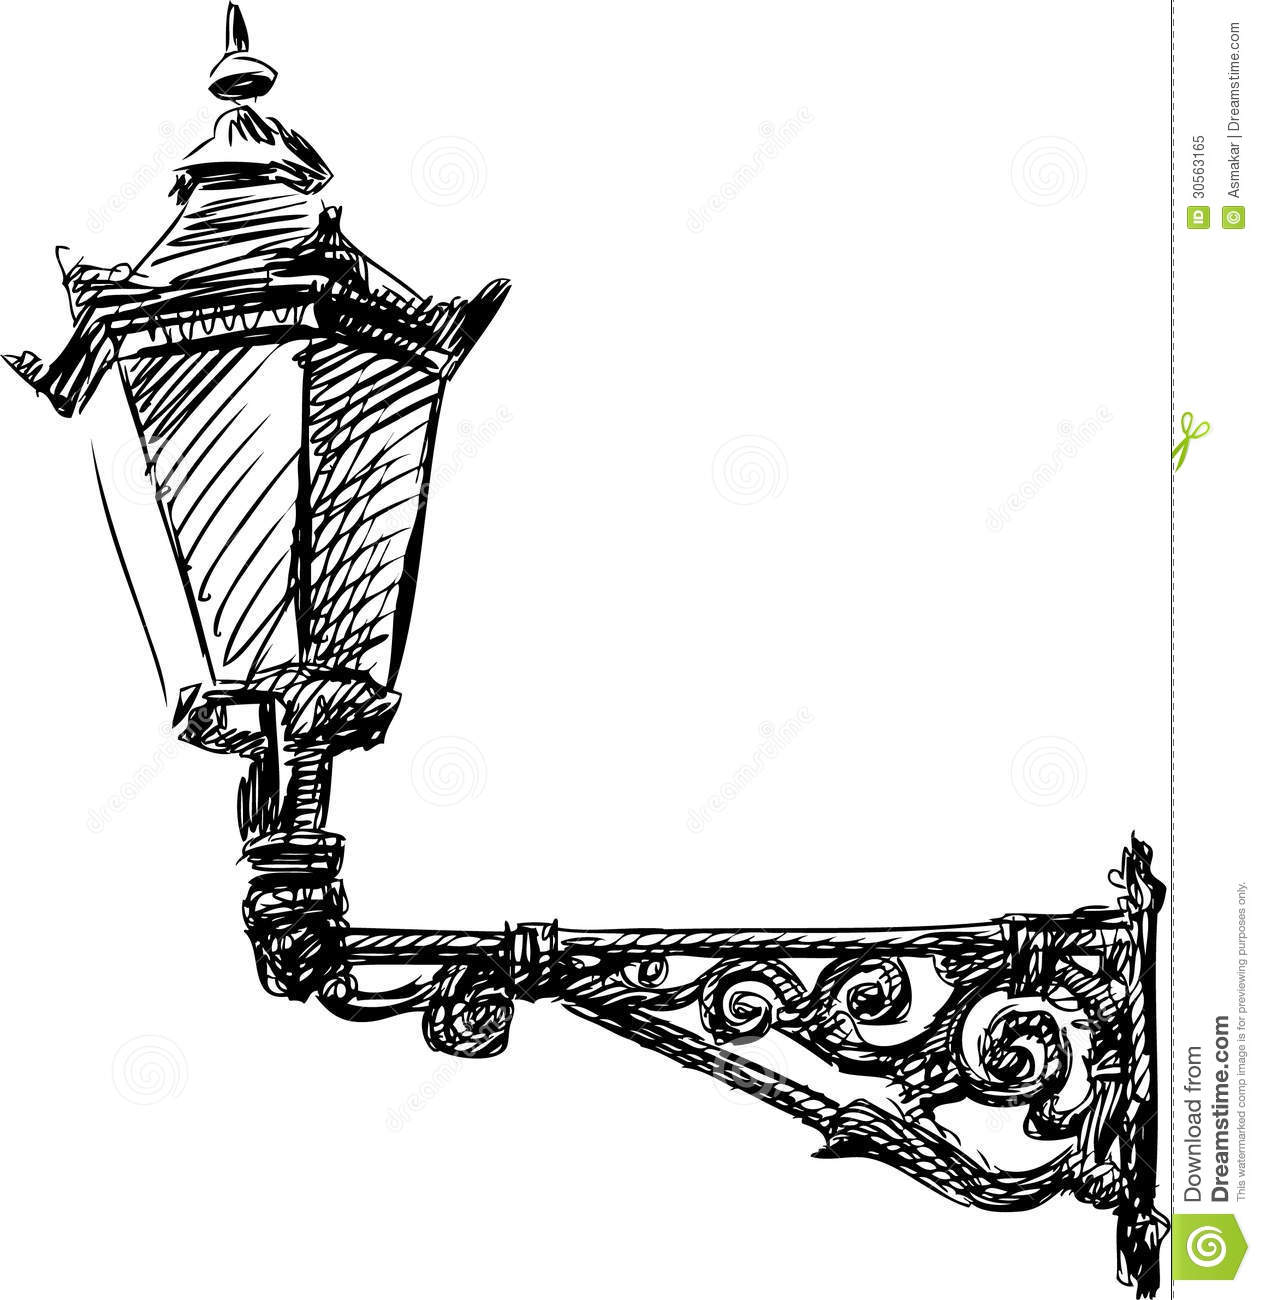 Street light stock image. Image of doodle, lamp, street - 30563165 for Street Light Drawing  75tgx